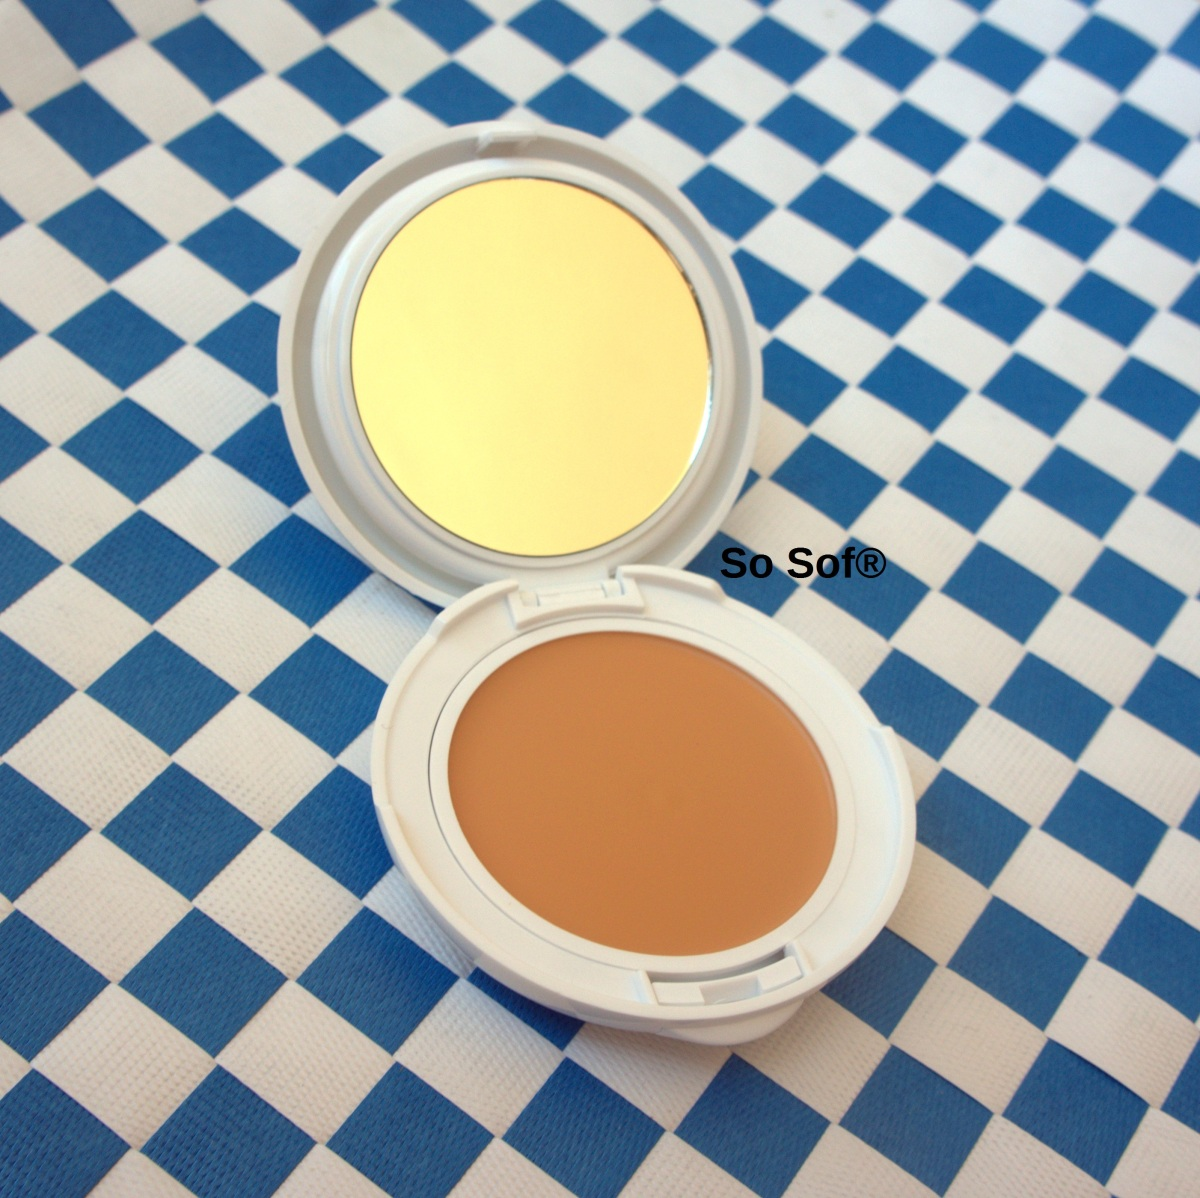 Avene Couvrance Compact Makeup: Review & Swatches